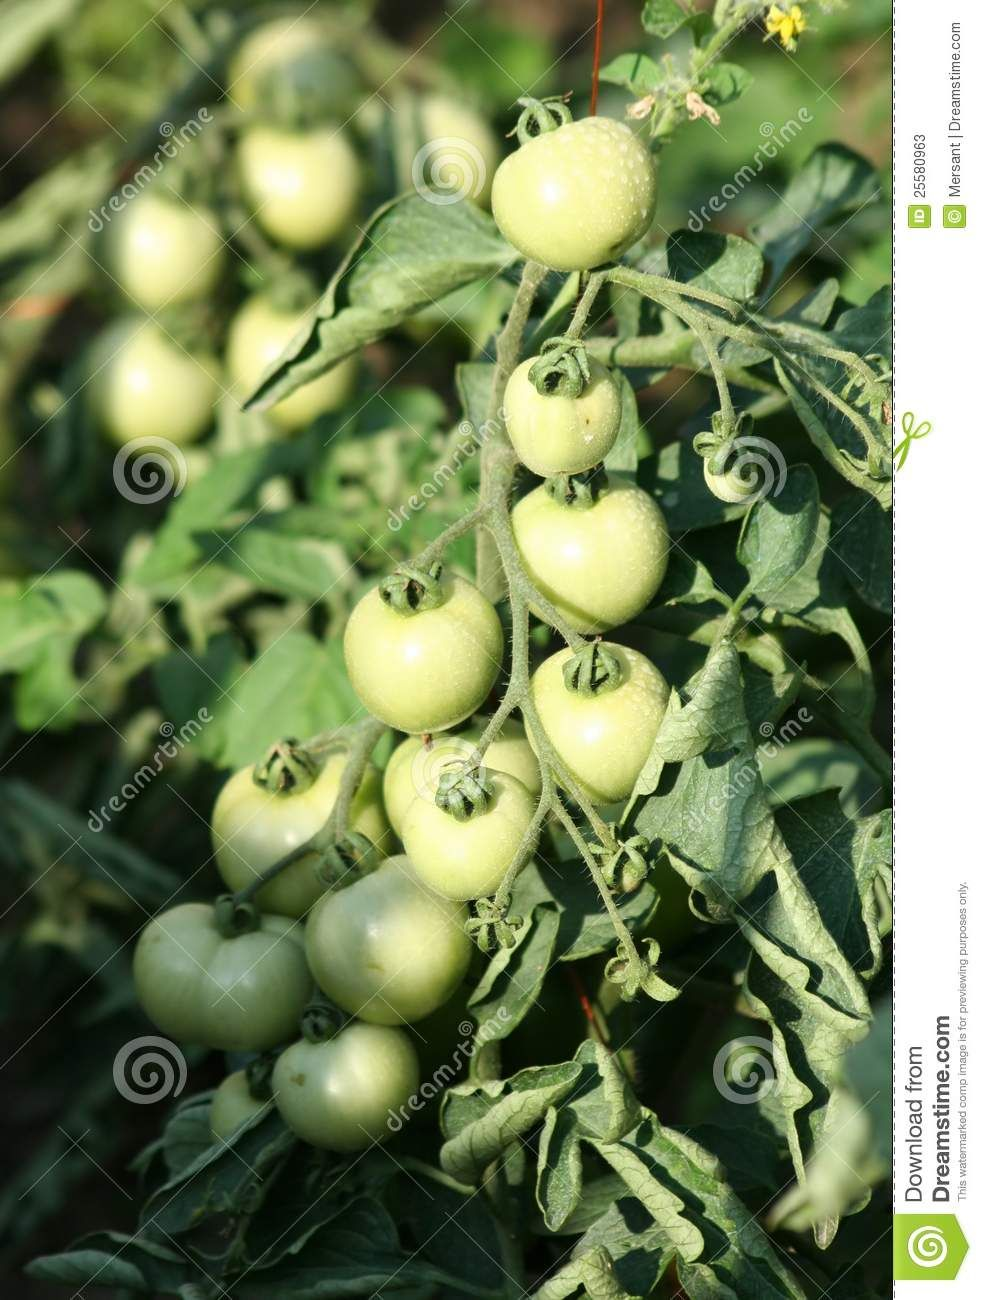 Some green tomatoes in a garden